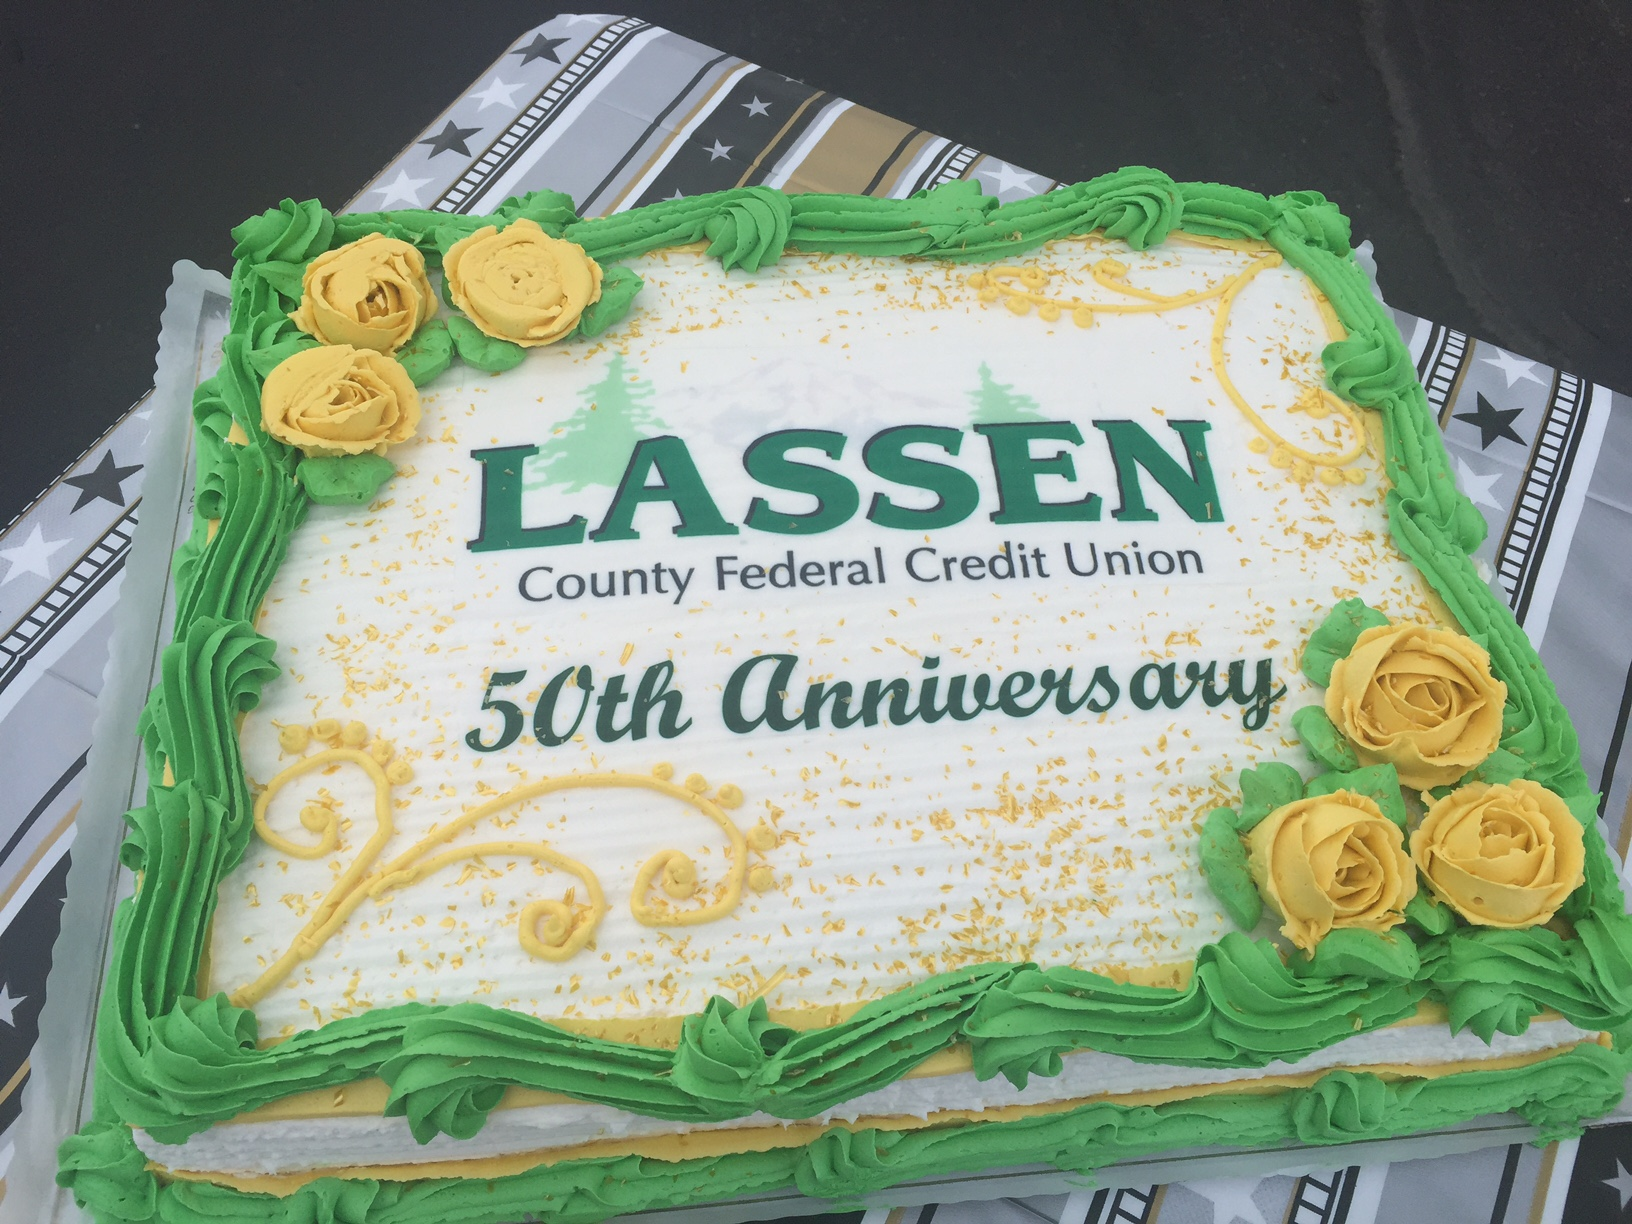 Lassen Credit Union celebrates it's 50th anniversary.